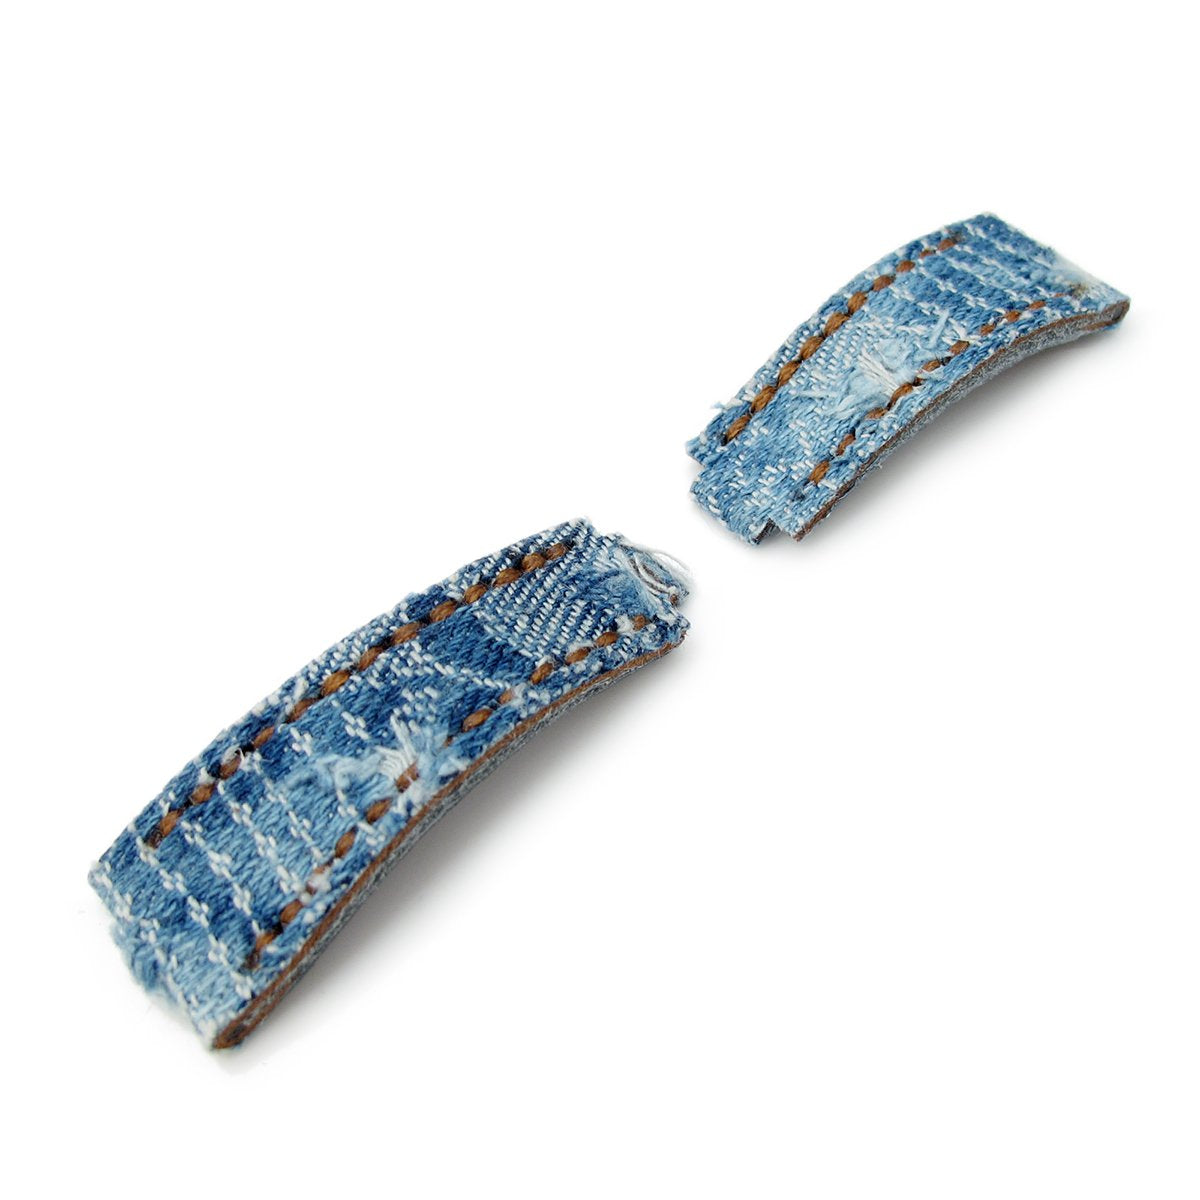 21mm MiLTAT RX Collection 'X' Distressed Denim Replacement Watch Strap Tailor-made for RX SUB & EXP Strapcode Watch Bands